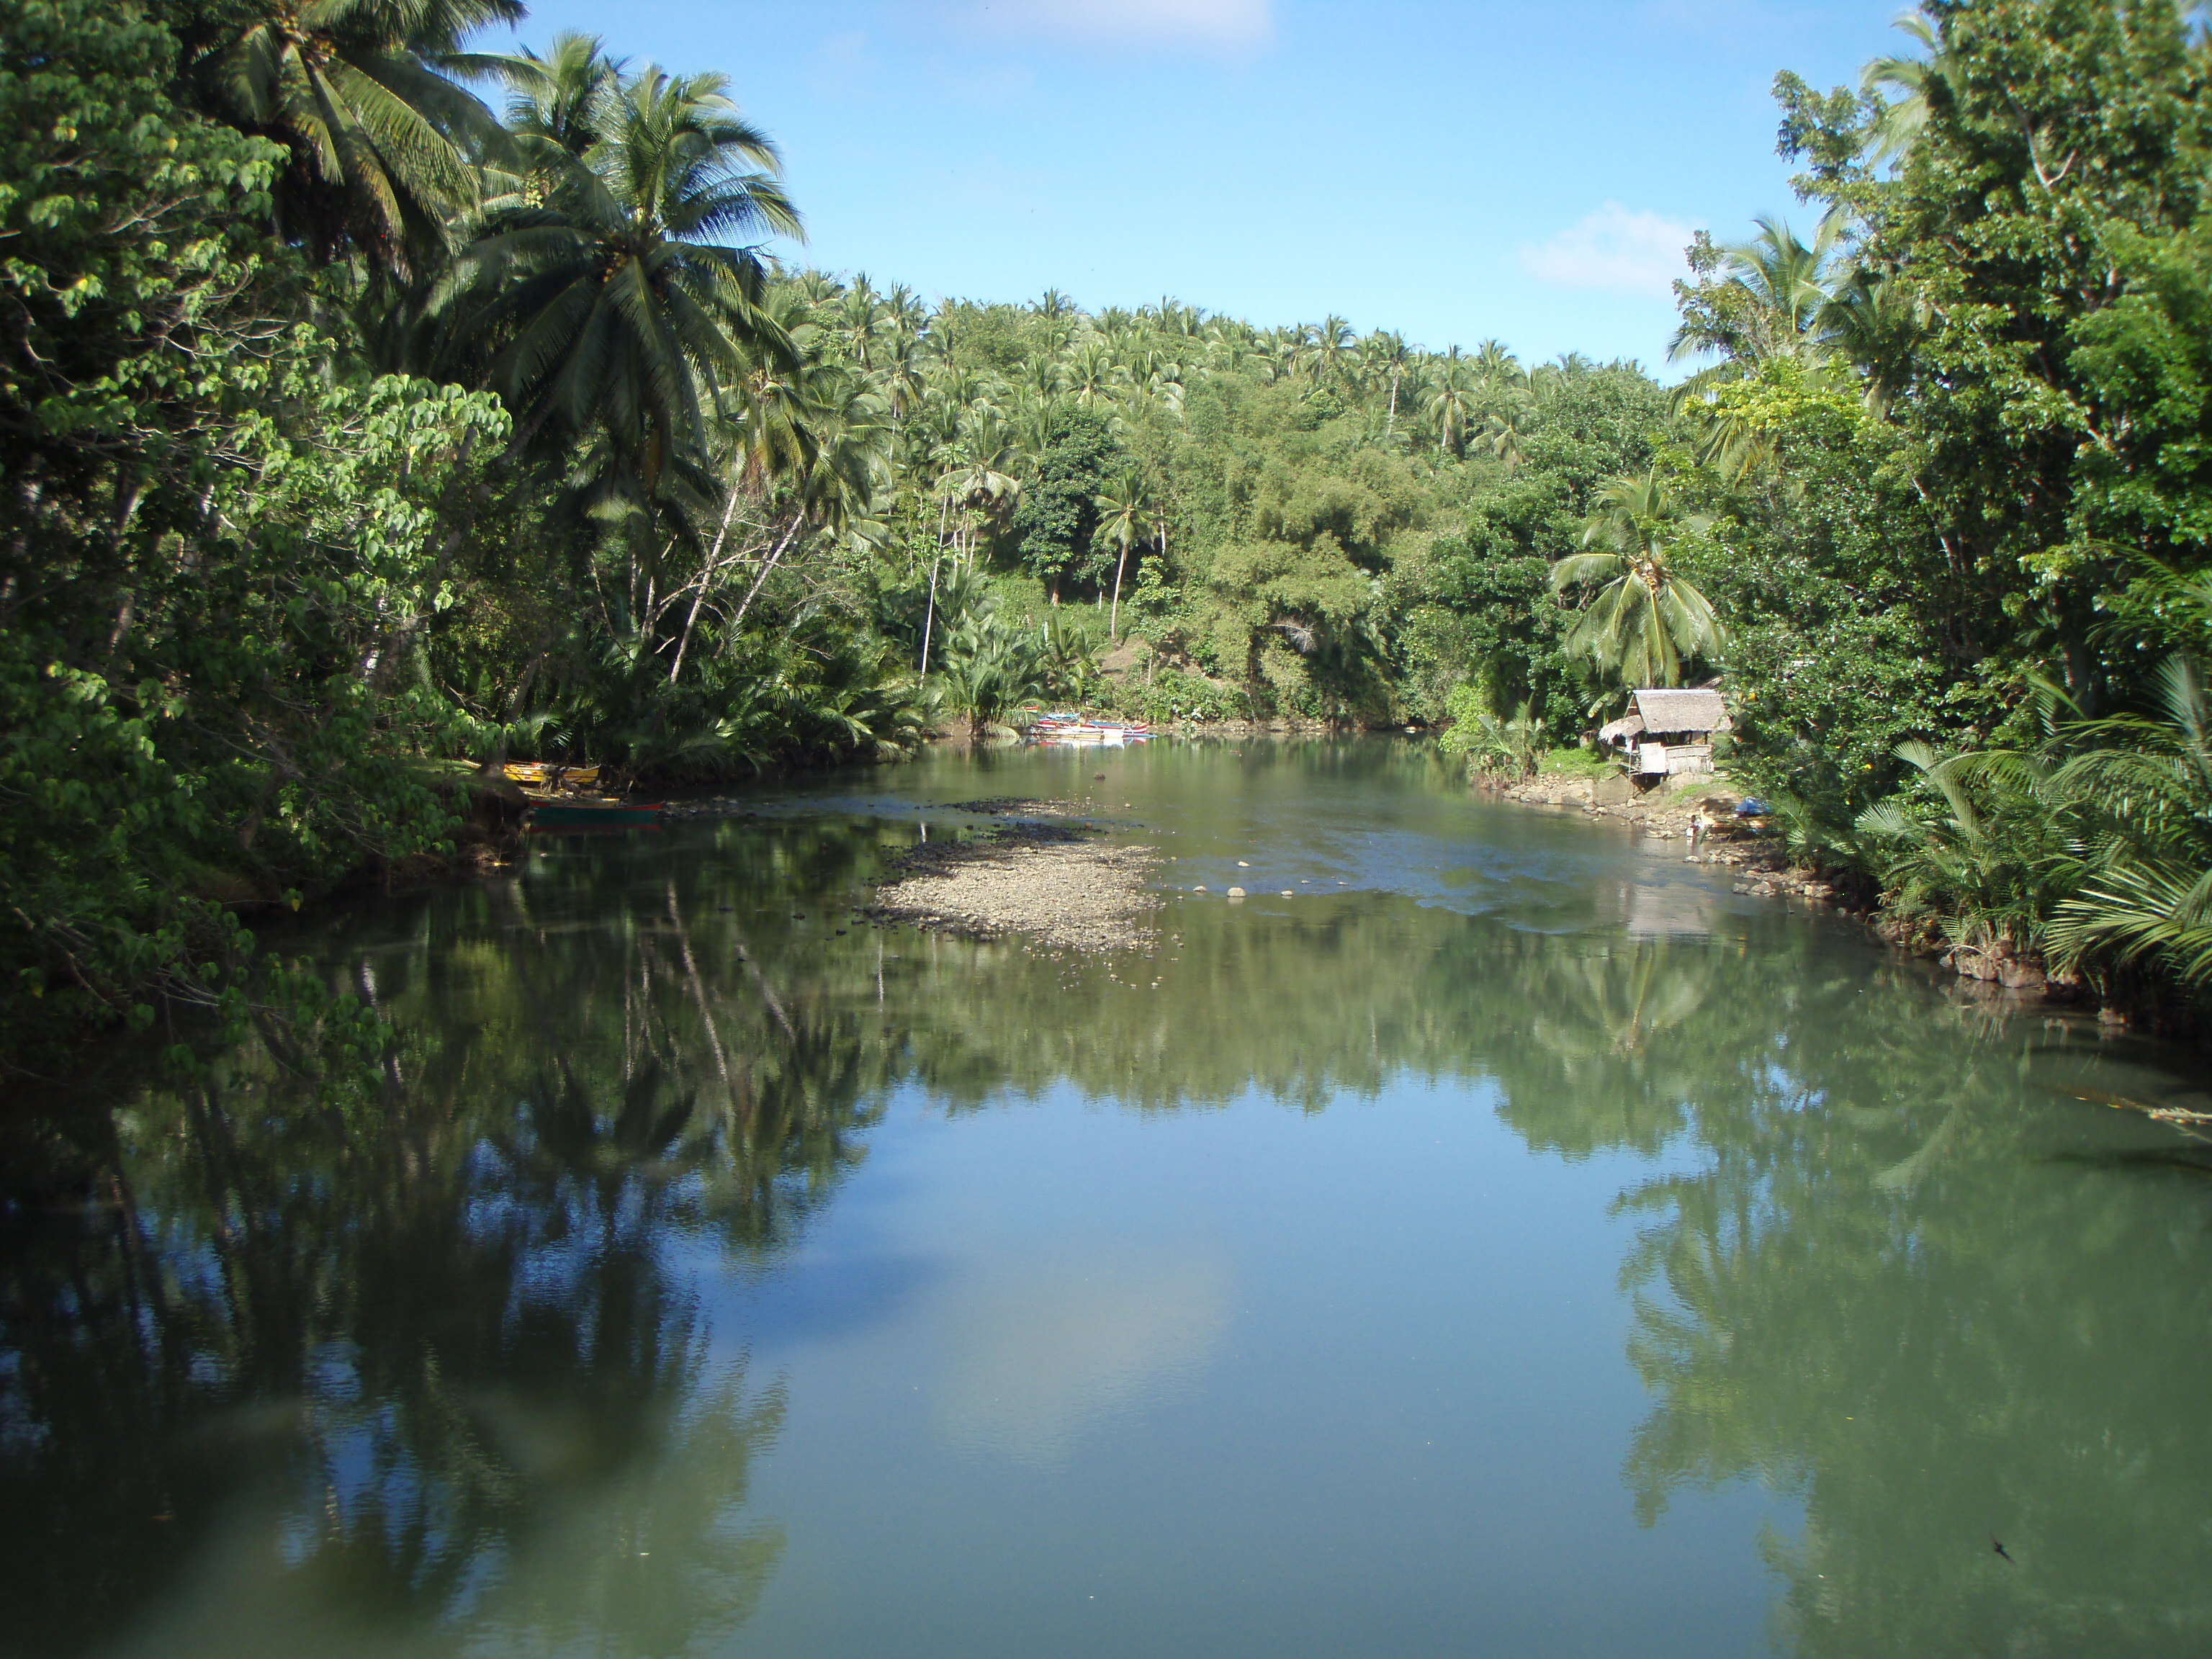 Plaridel, Misamis Occidental, Philippines